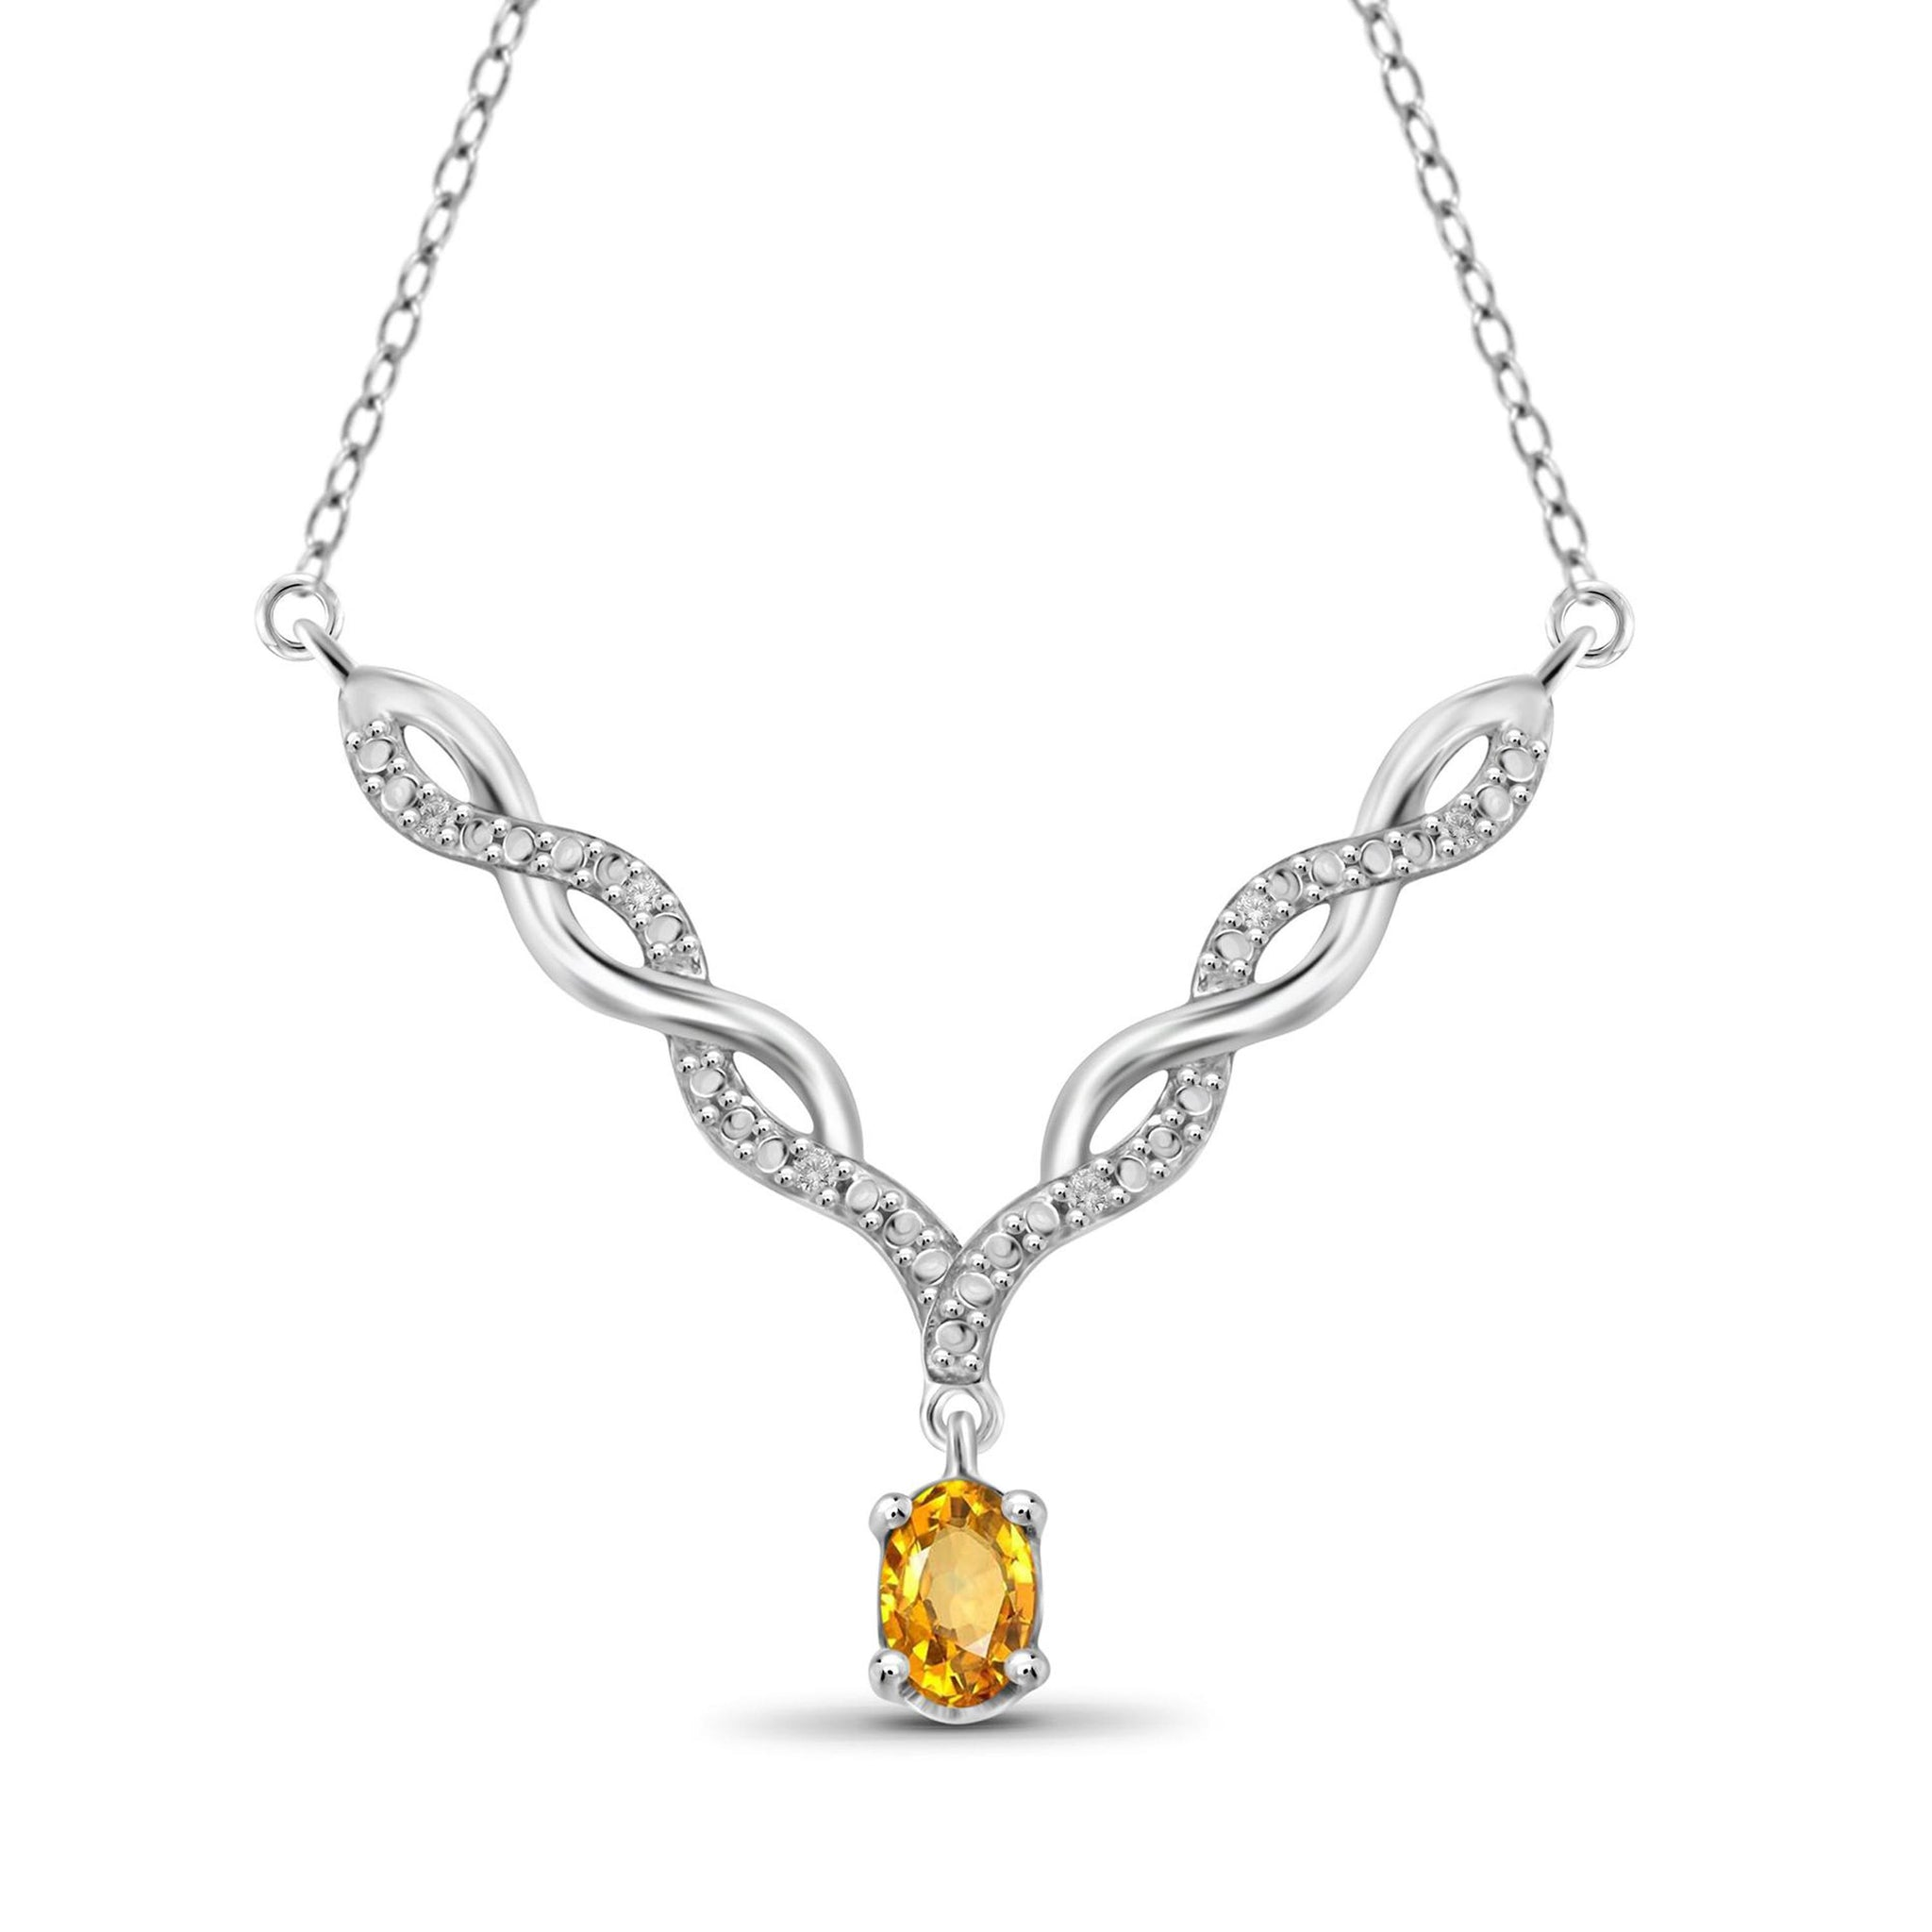 JewelonFire 1/2 Carat T.G.W. Citrine And 1/20 Carat T.W. White Diamond Sterling Silver Pendant - Assorted Colors